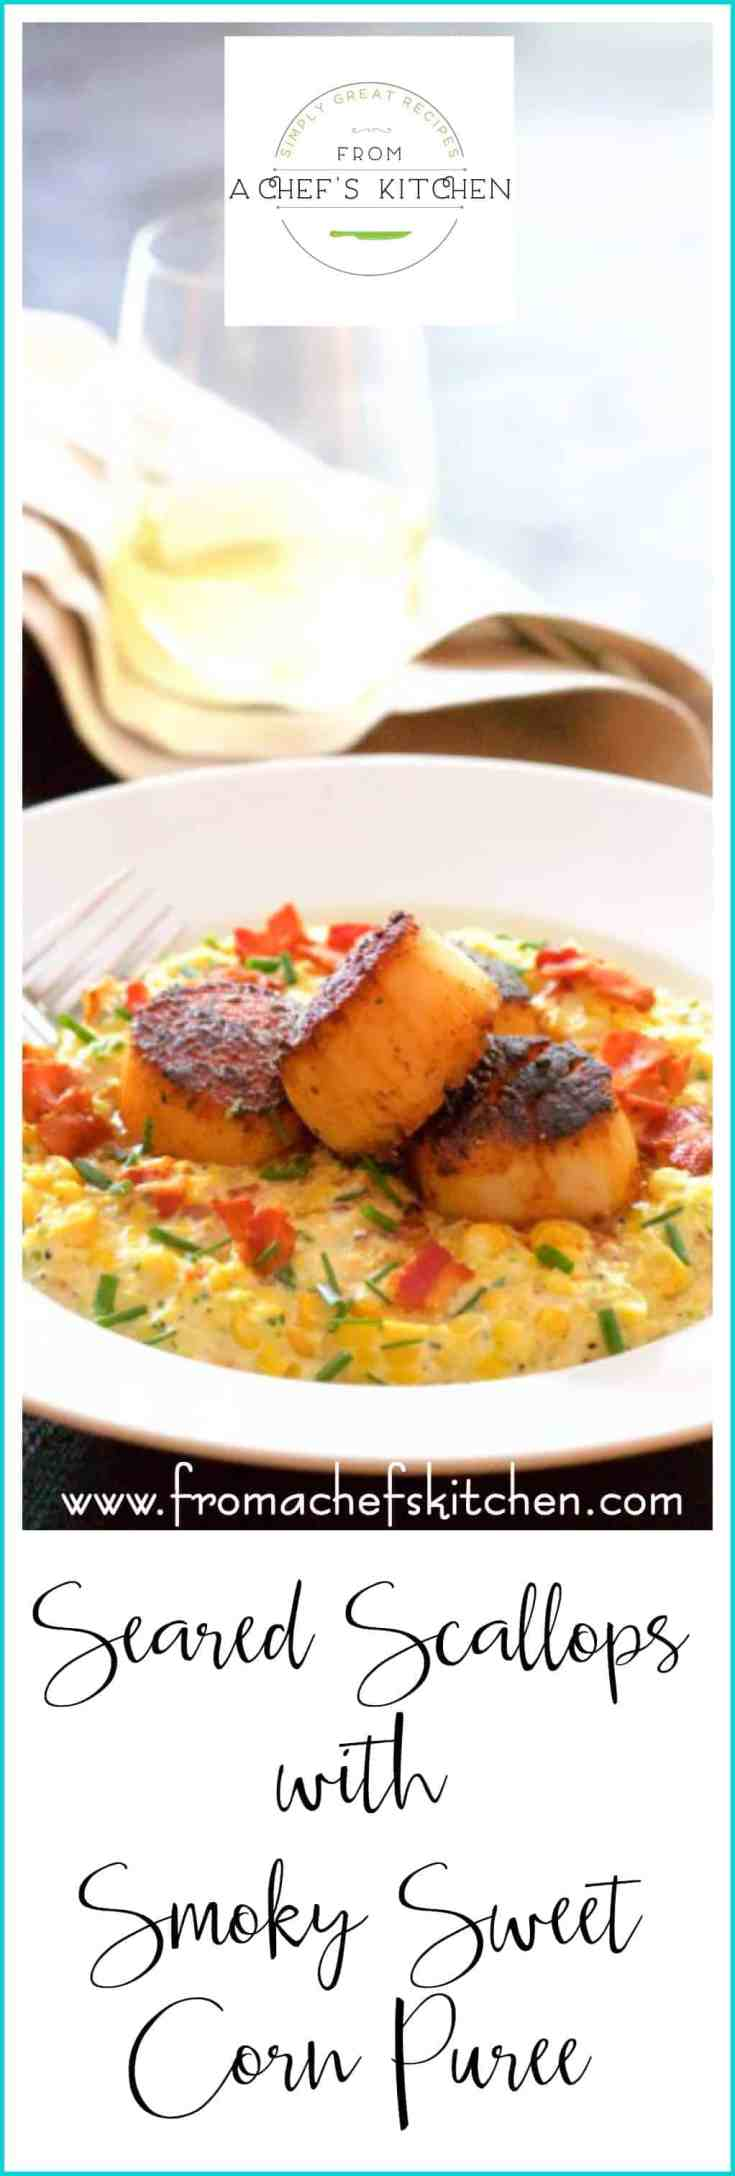 Seared Scallops with Smoky Sweet Corn Puree is a wonderful way to use leftover grilled corn and enjoy an elegant dinner for two at the same time! #searedscallops #seascallops #sweetcorn #corn #seafood #dinnerfortwo